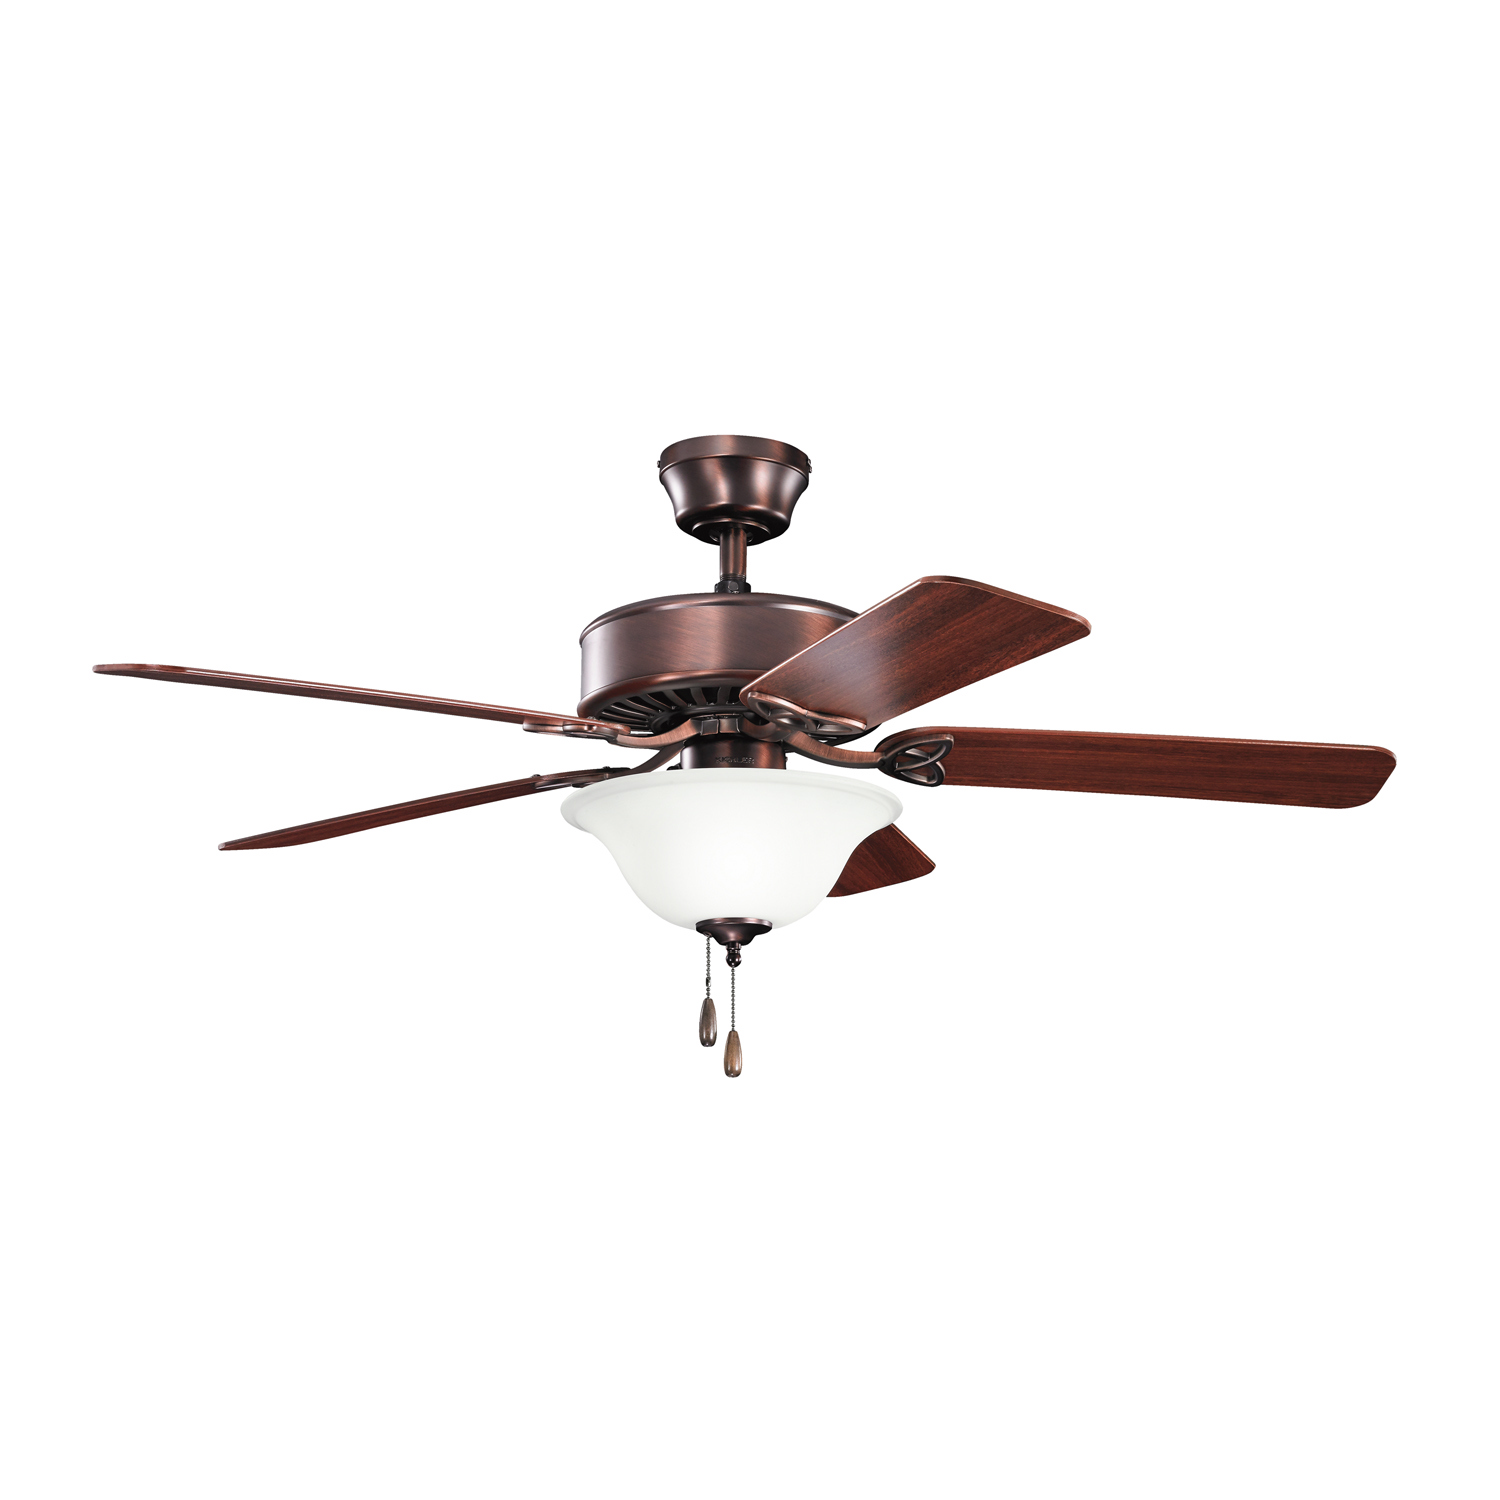 50 inchCeiling Fan from the Renew Select collection by Kichler 330110OBB